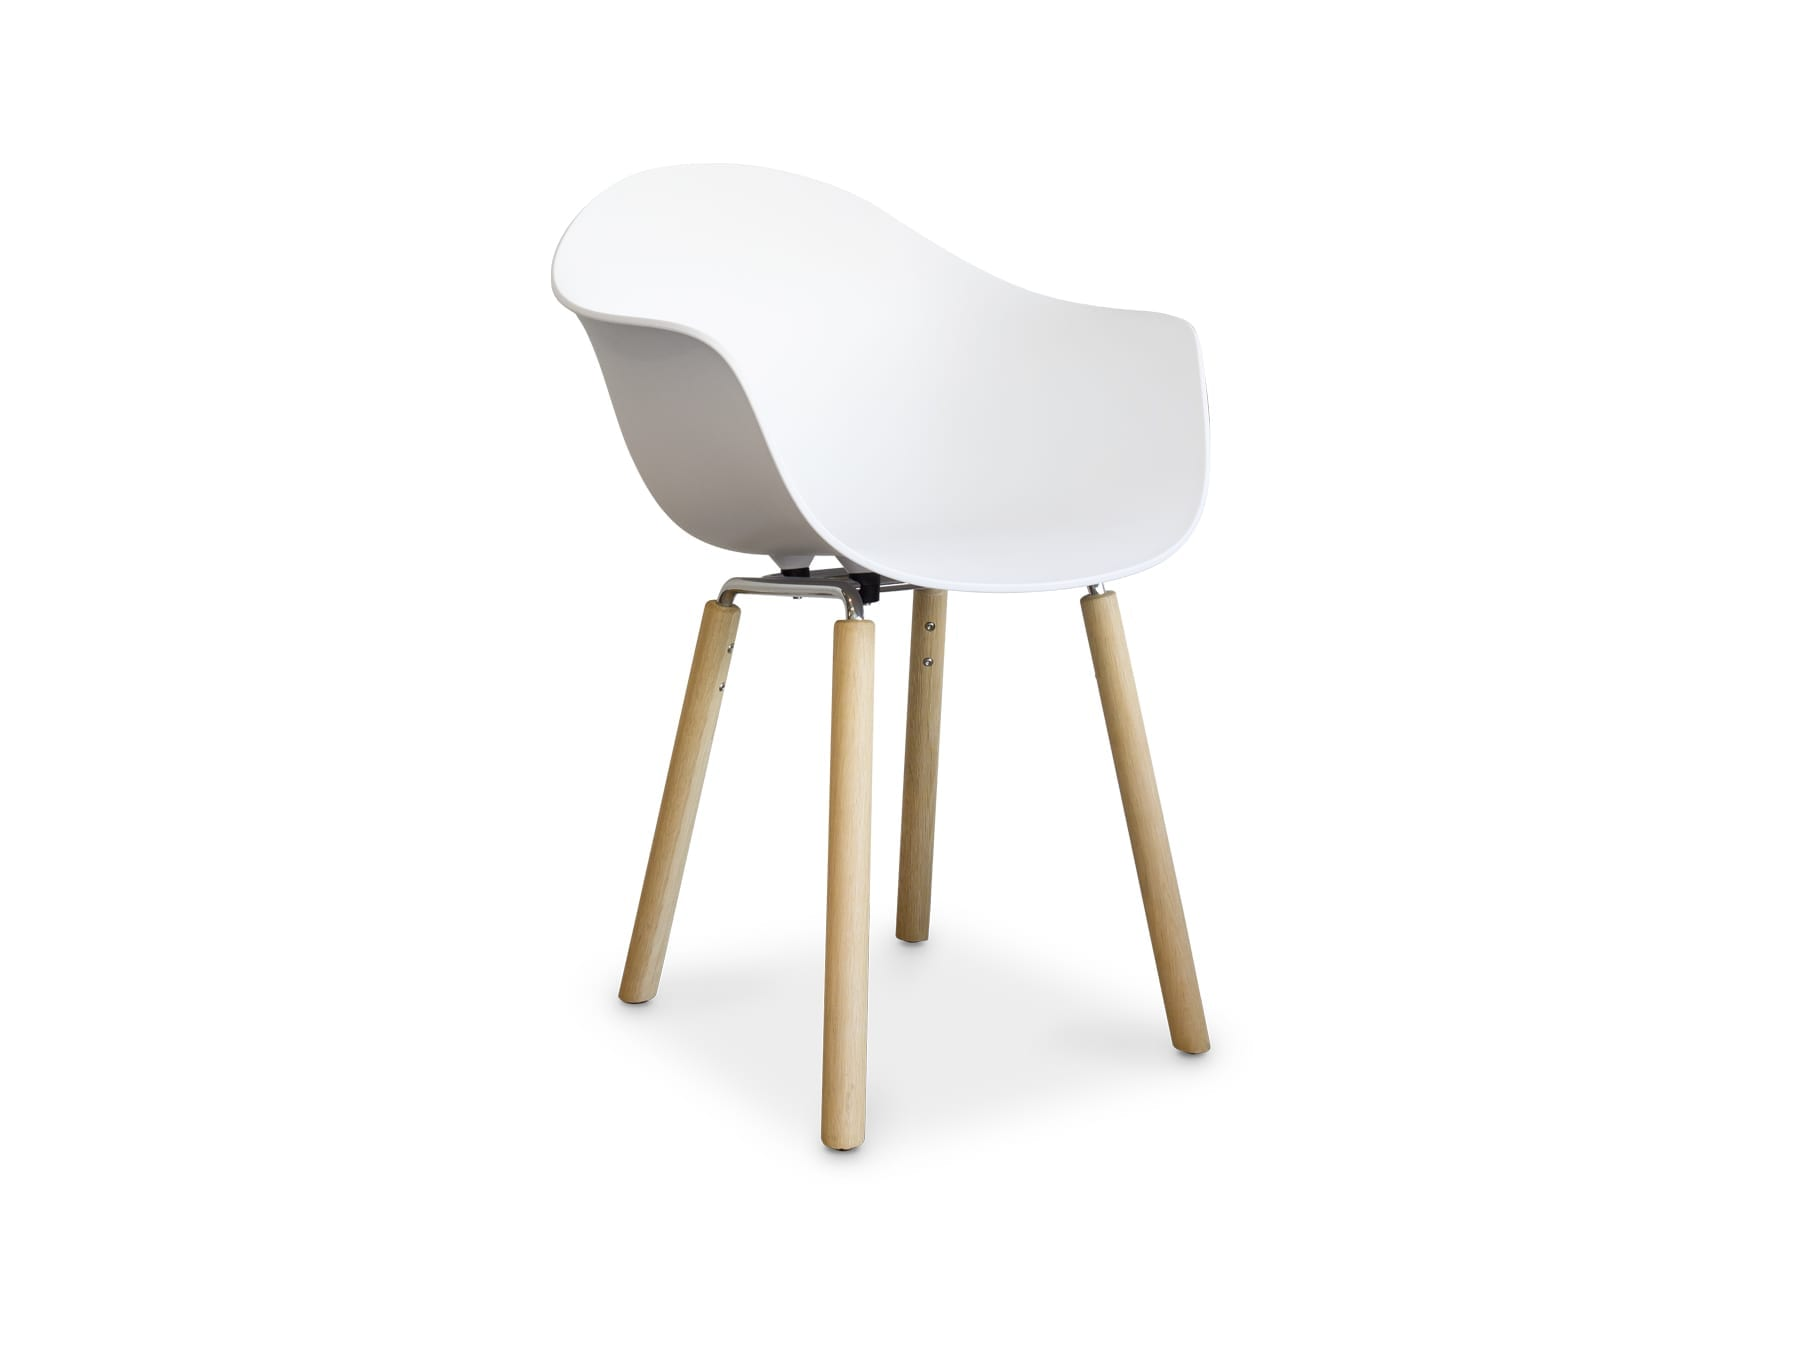 Toou Shell Armchair with Wood Legs available at McKenzie & Willis